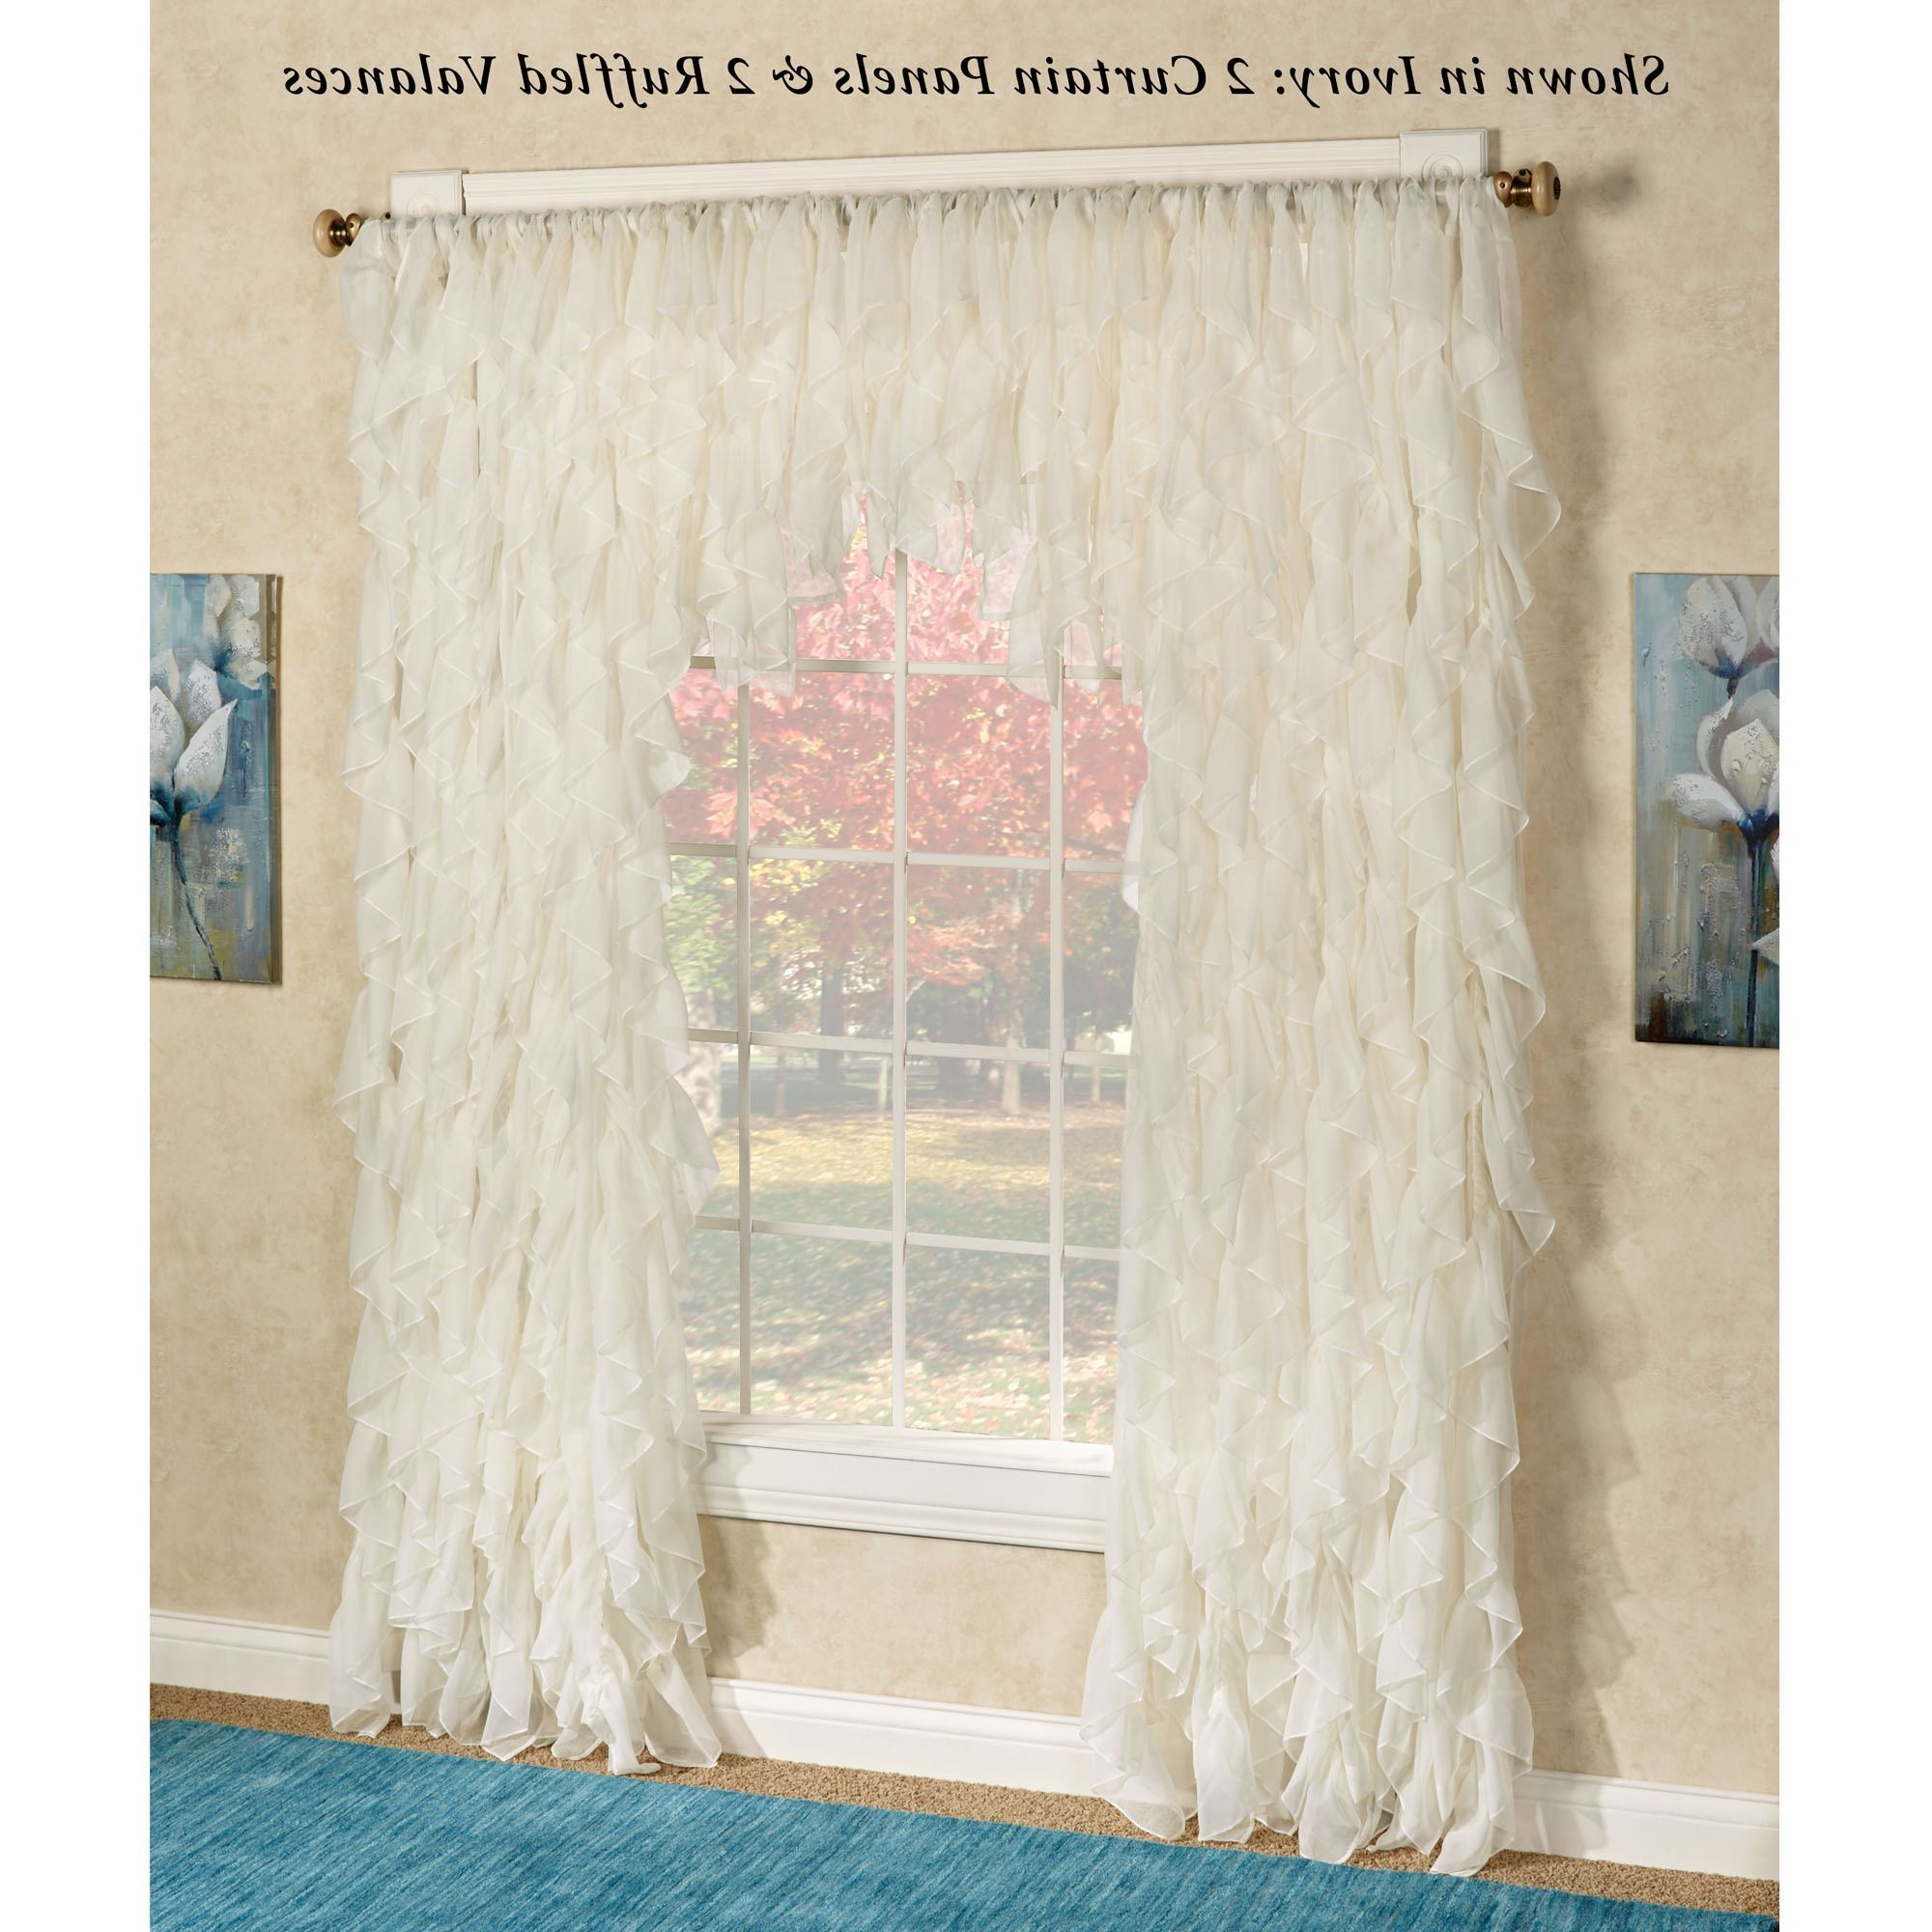 Cascade Sheer Voile Ruffled Window Treatment Regarding Well Liked Sheer Voile Ruffled Tier Window Curtain Panels (View 10 of 20)